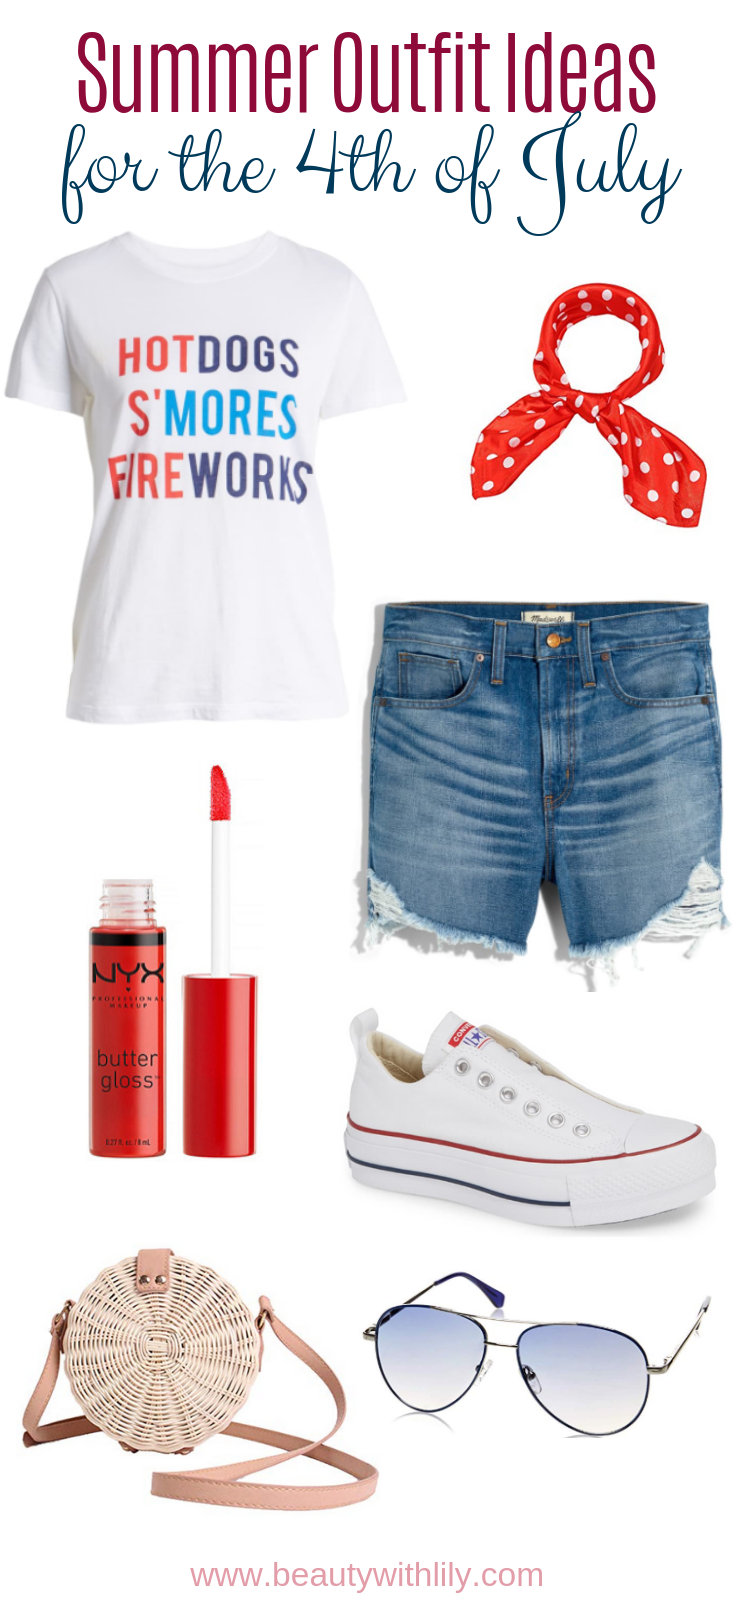 4th of July Outfit Inspiration // July 4th Fashion // Red White & Blue Outfits // Patriotic Outfit Ideas // Summer Outfit Ideas | Beauty With Lily